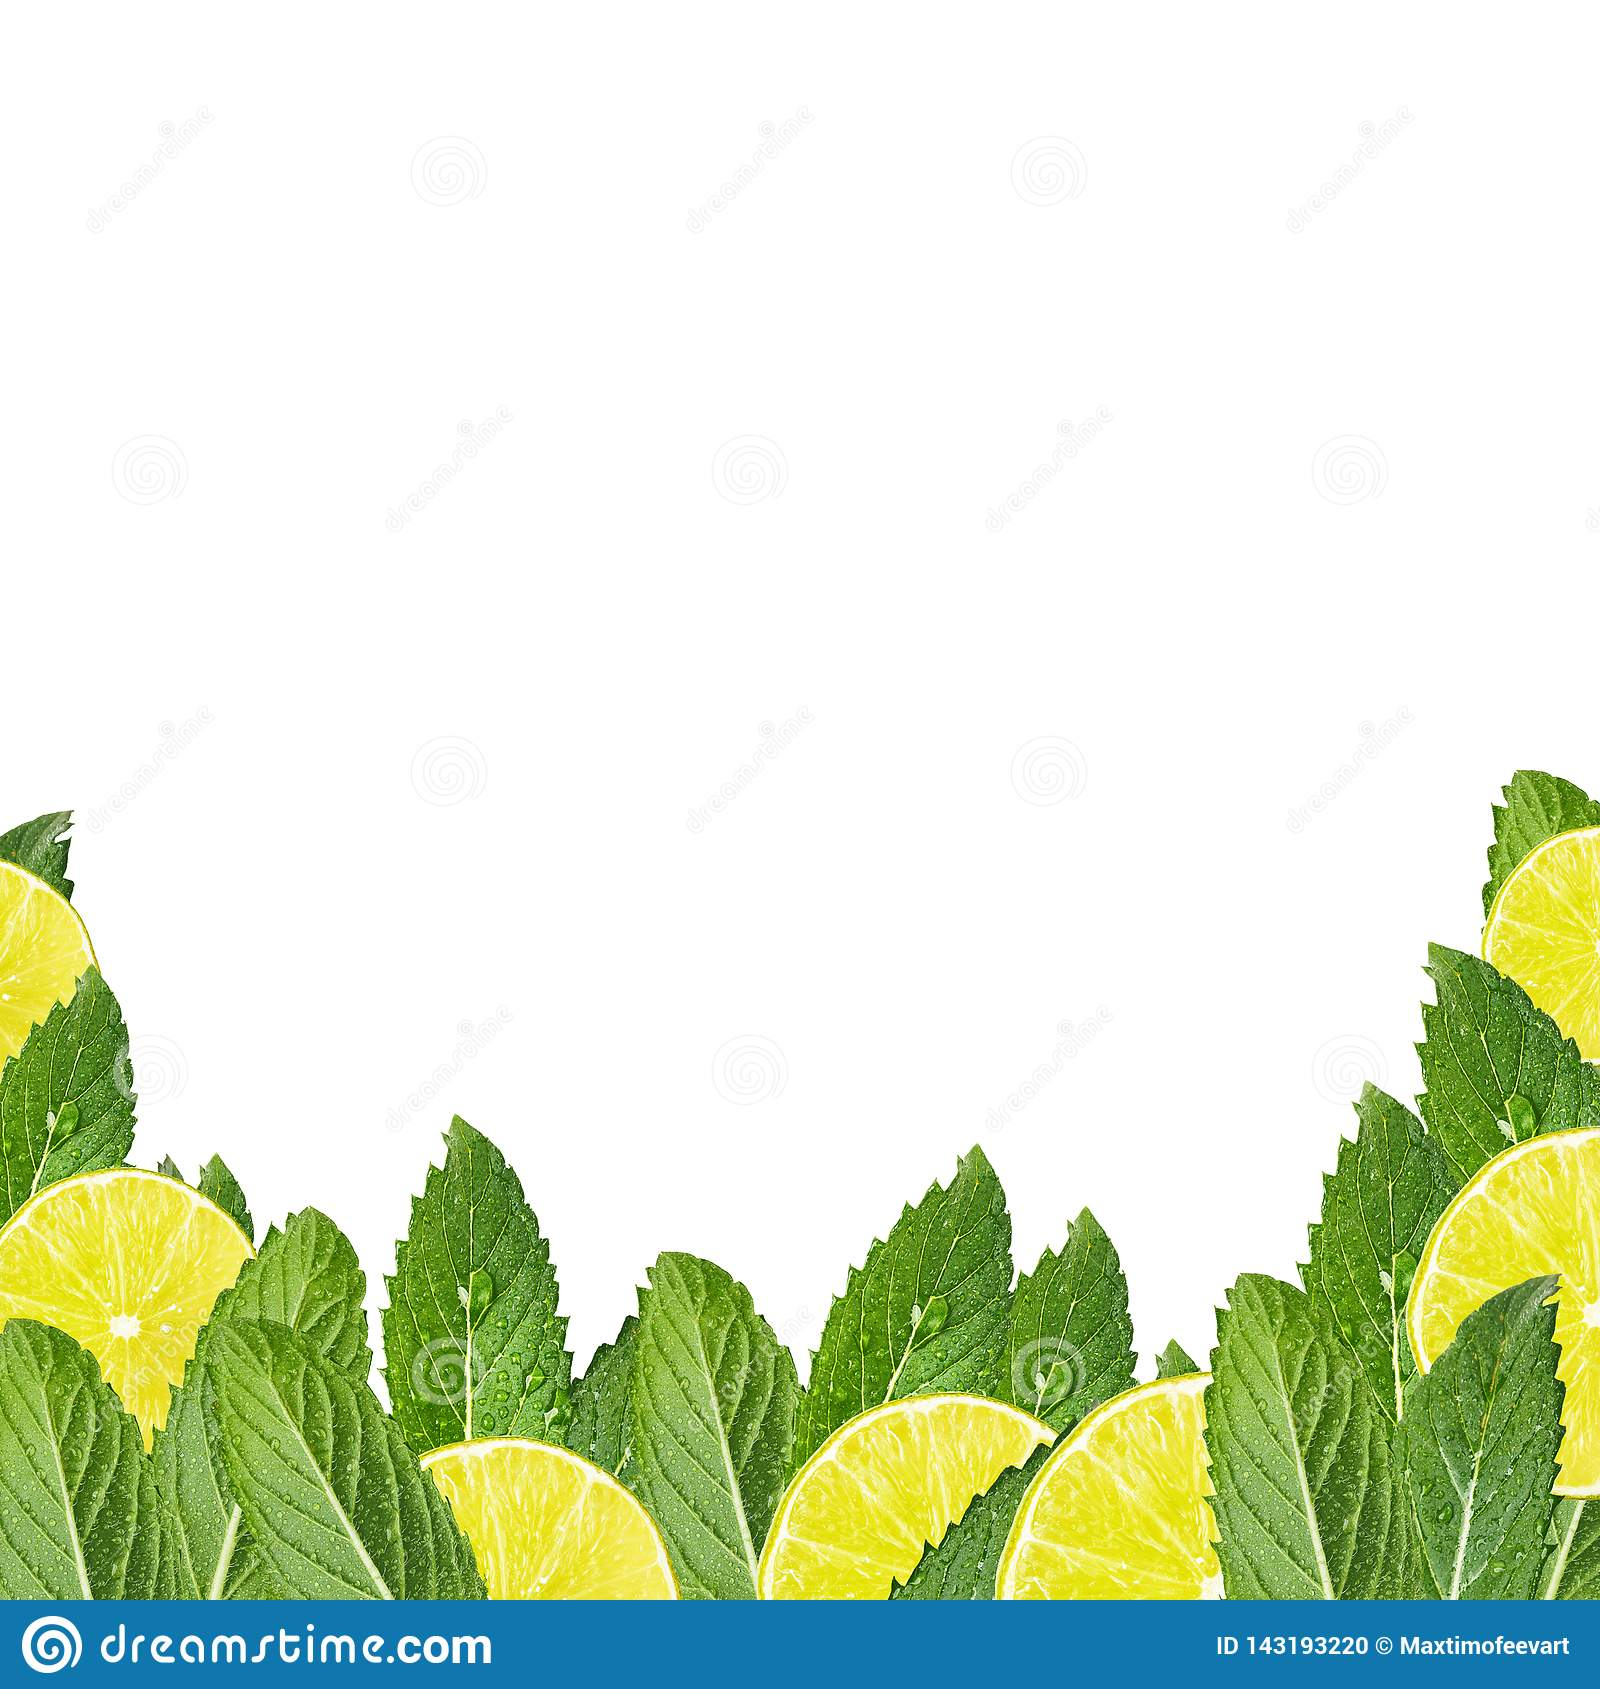 Pattern of mint leaves and lemon slices